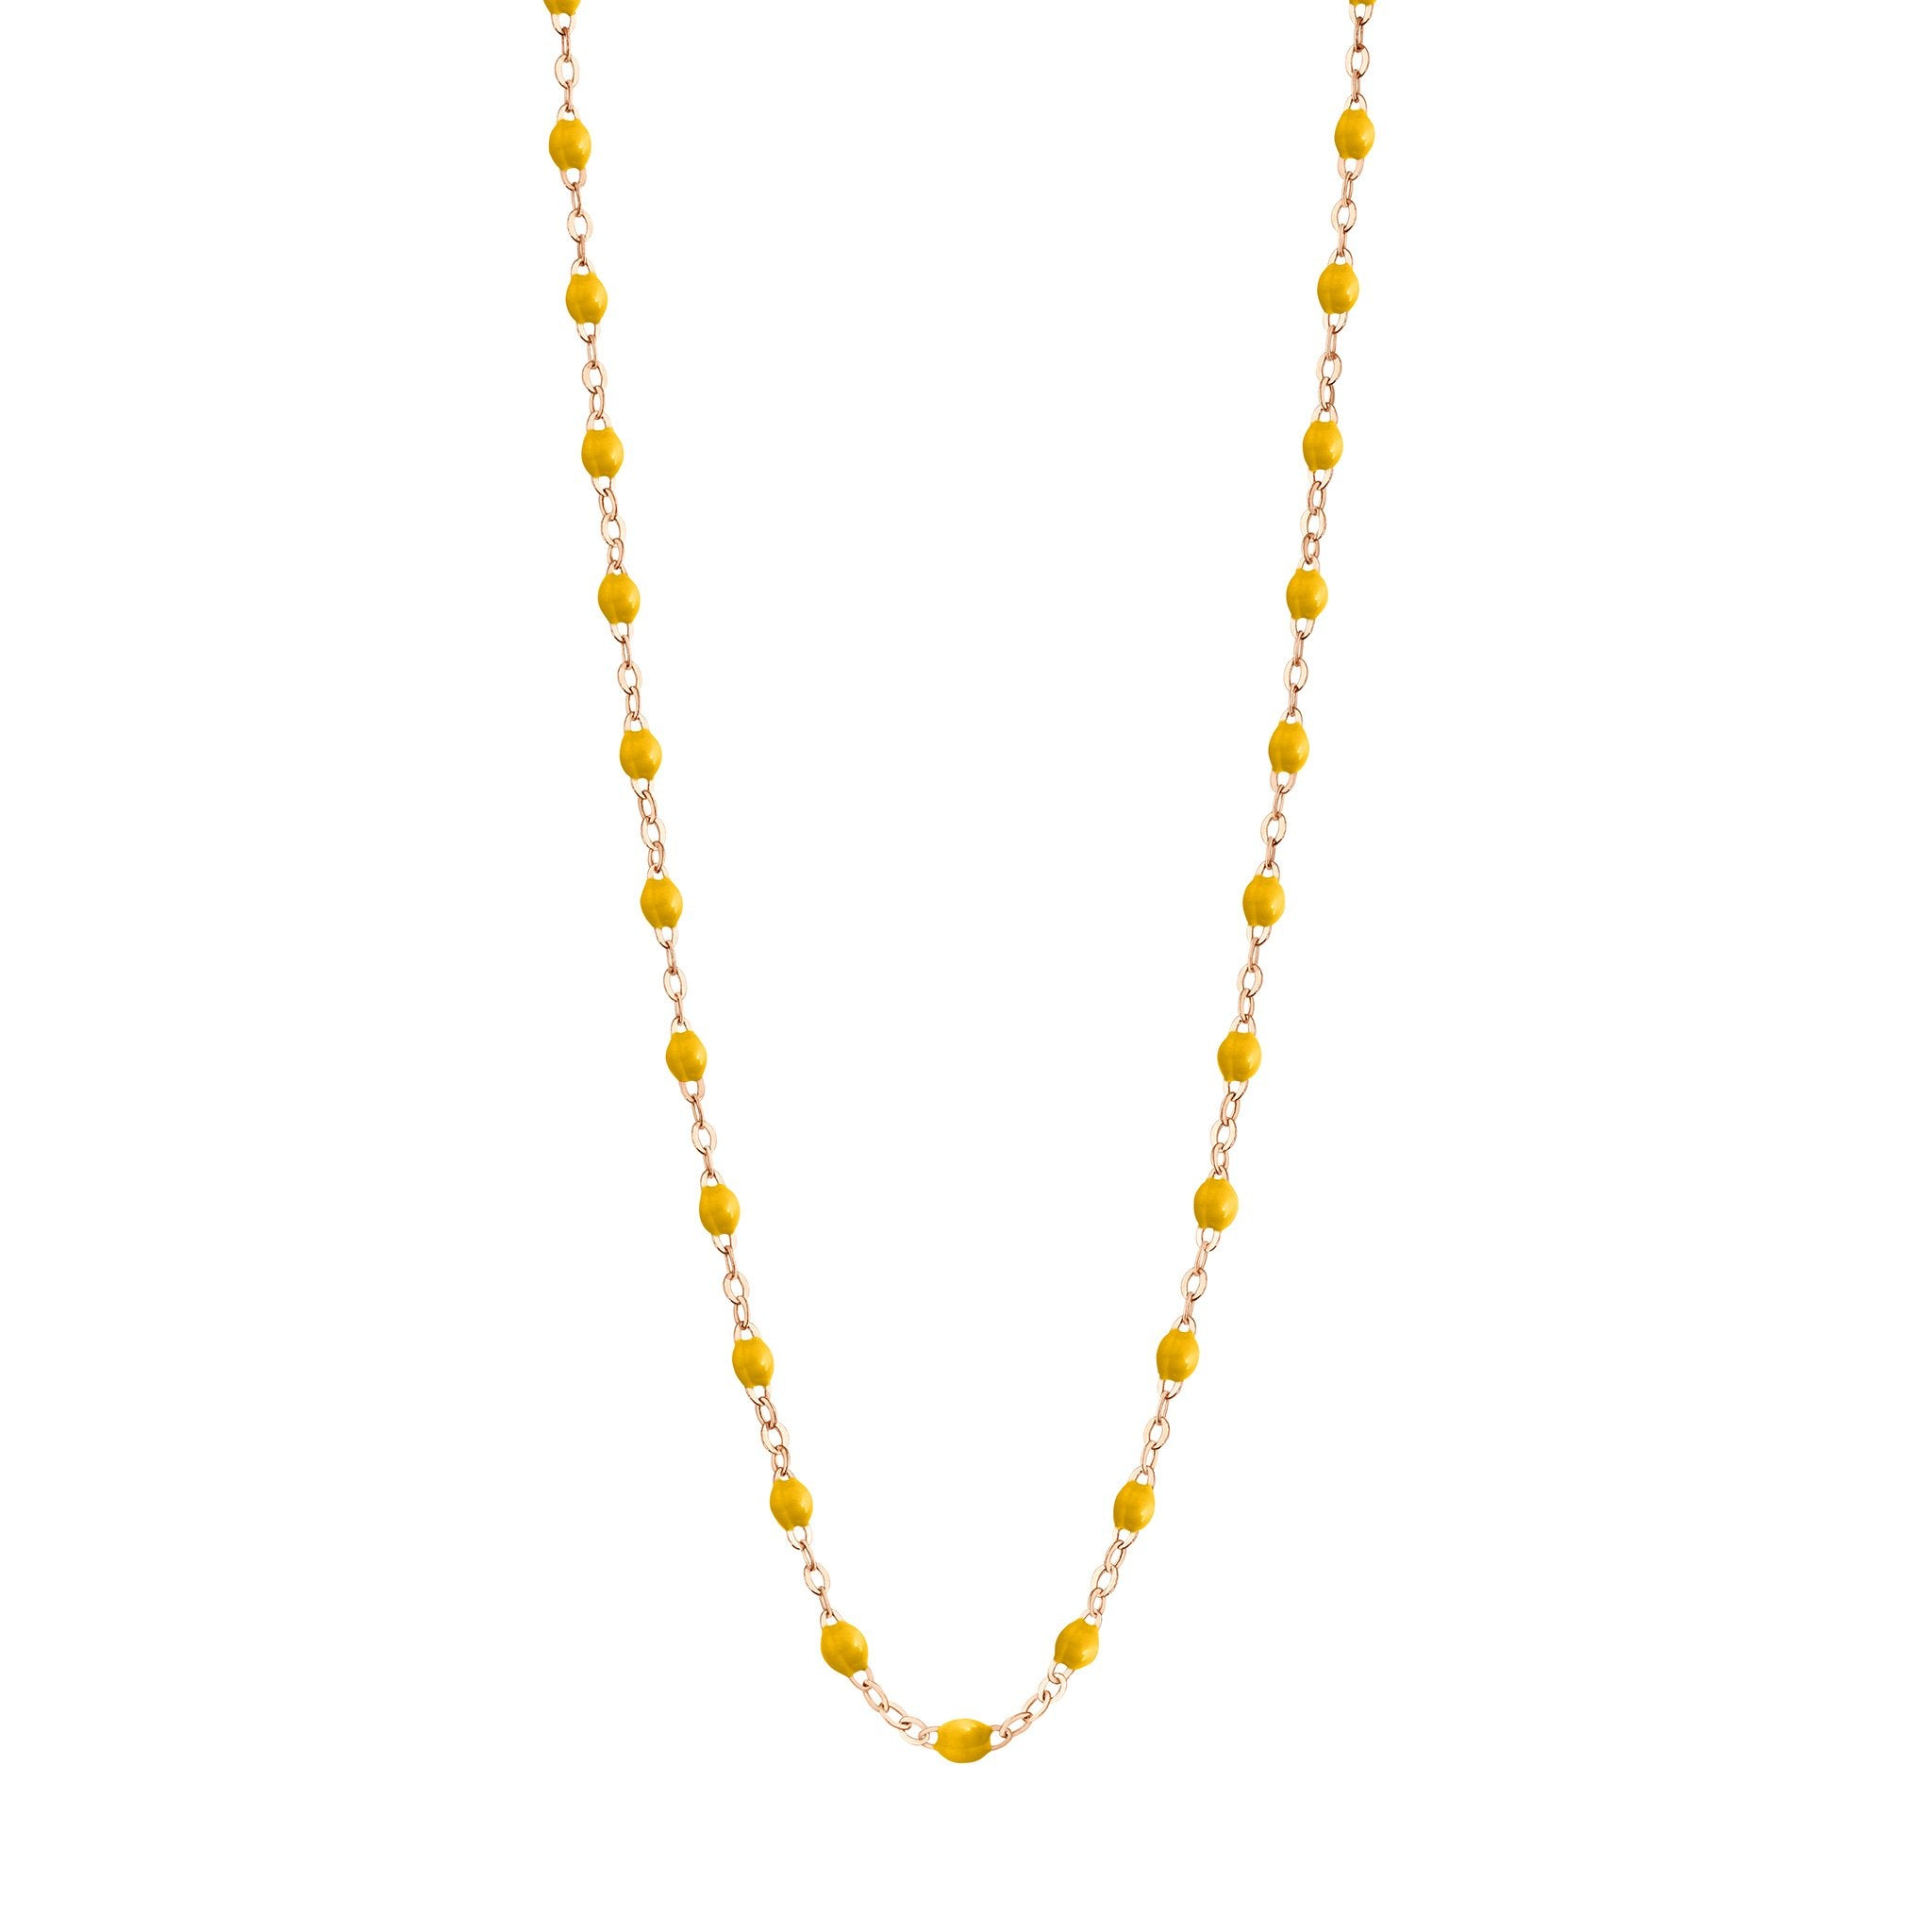 Gigi Clozeau - Classic Gigi Yellow necklace, Rose Gold, 17.7""